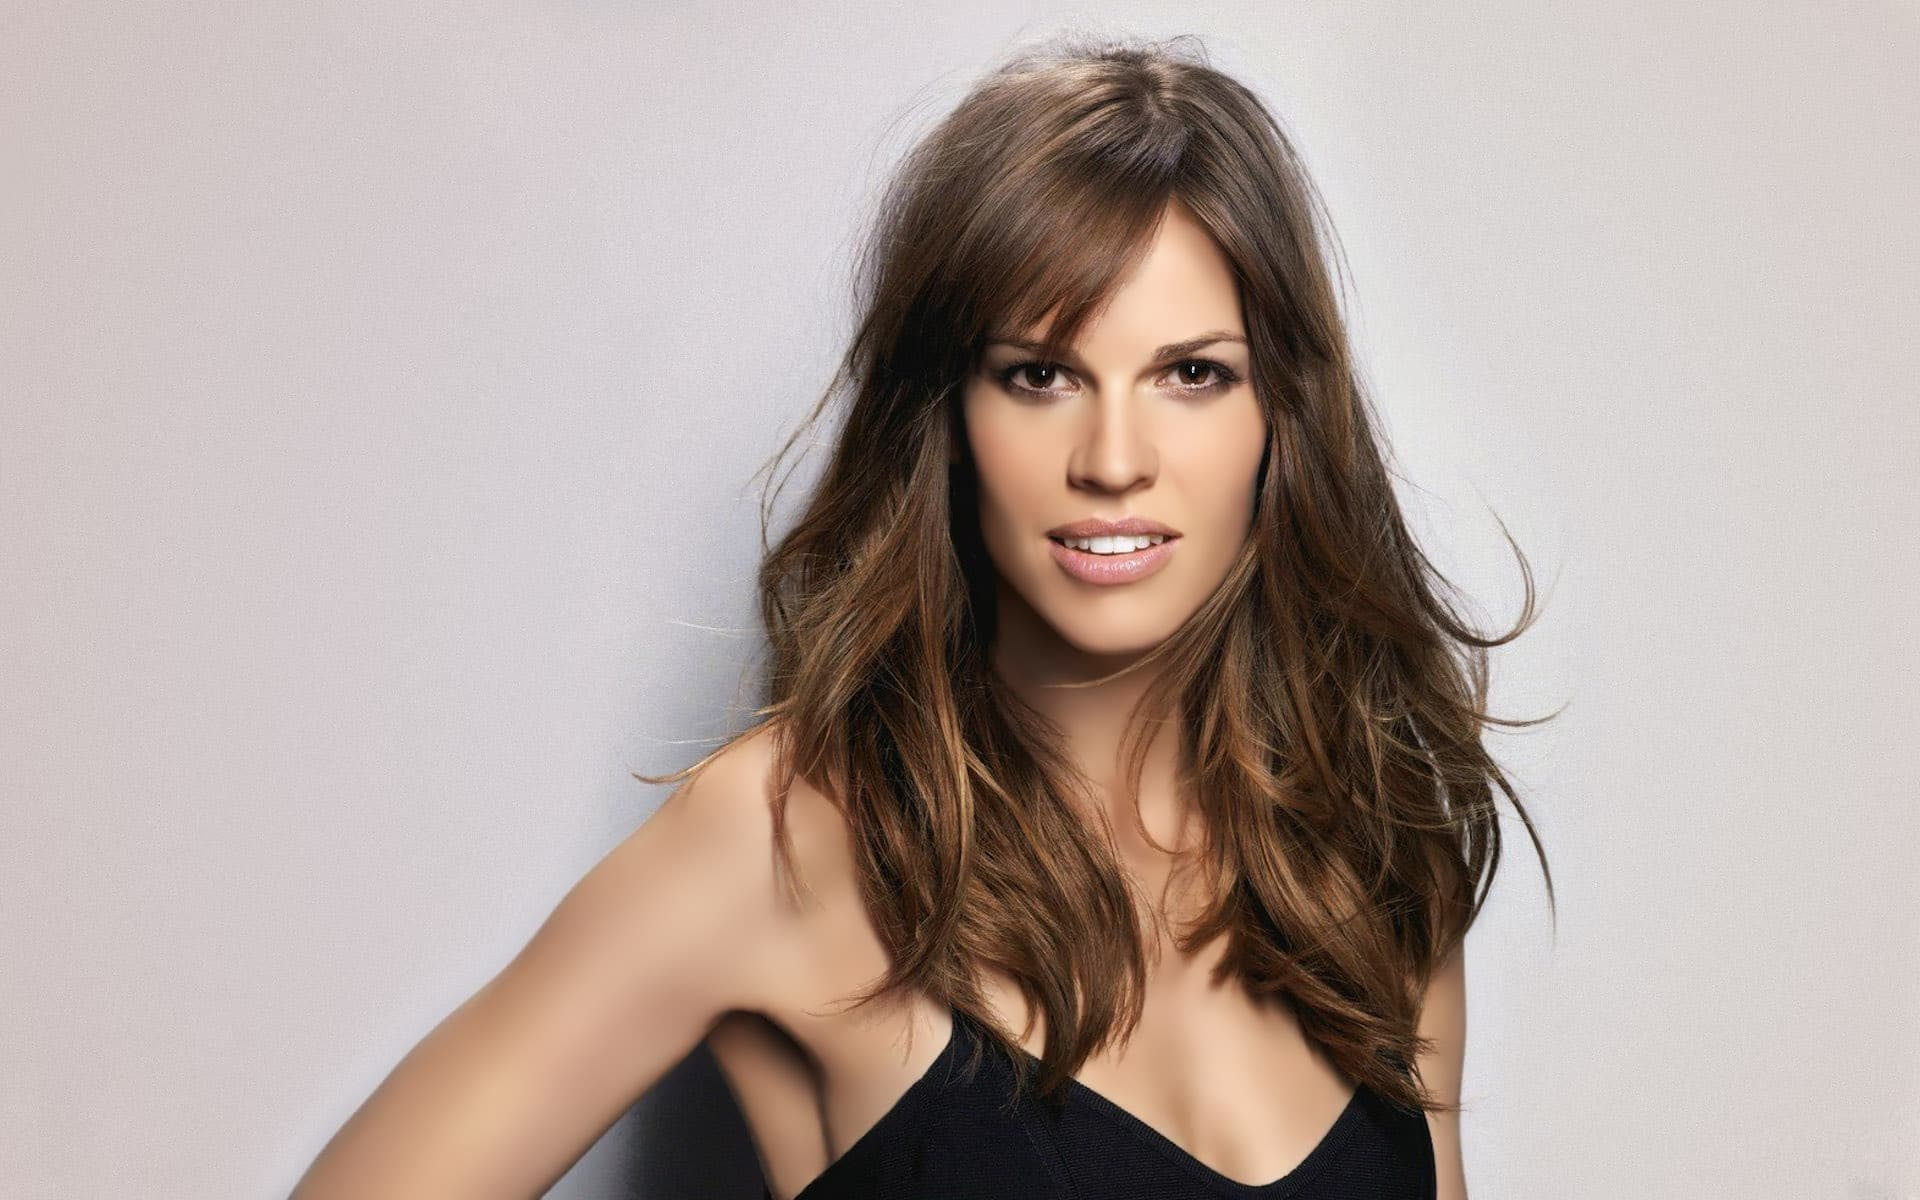 Hilary Swank American Actress, Producer